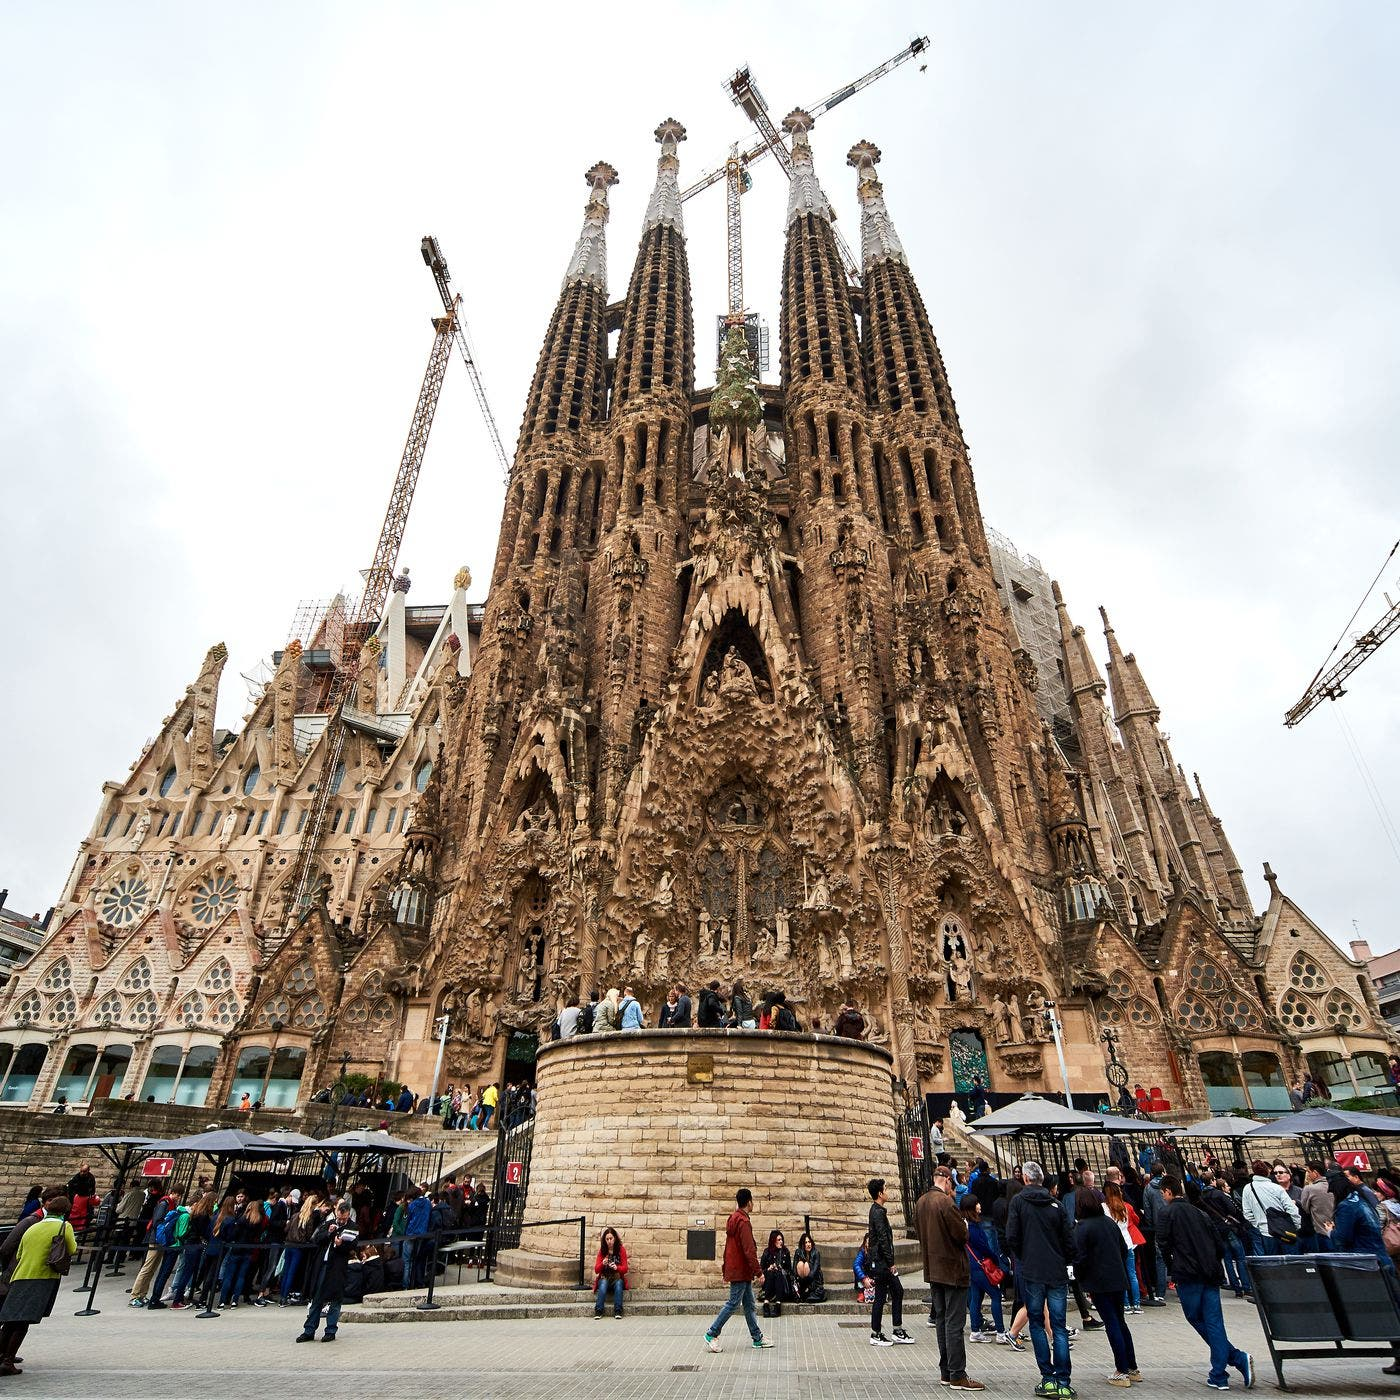 Spain S La Sagrada Familia Will Open Its Doors To Barcelona Front Line Professionals Free Of Charge For Two Weekends In July As A Thank You Olive Press News Spain